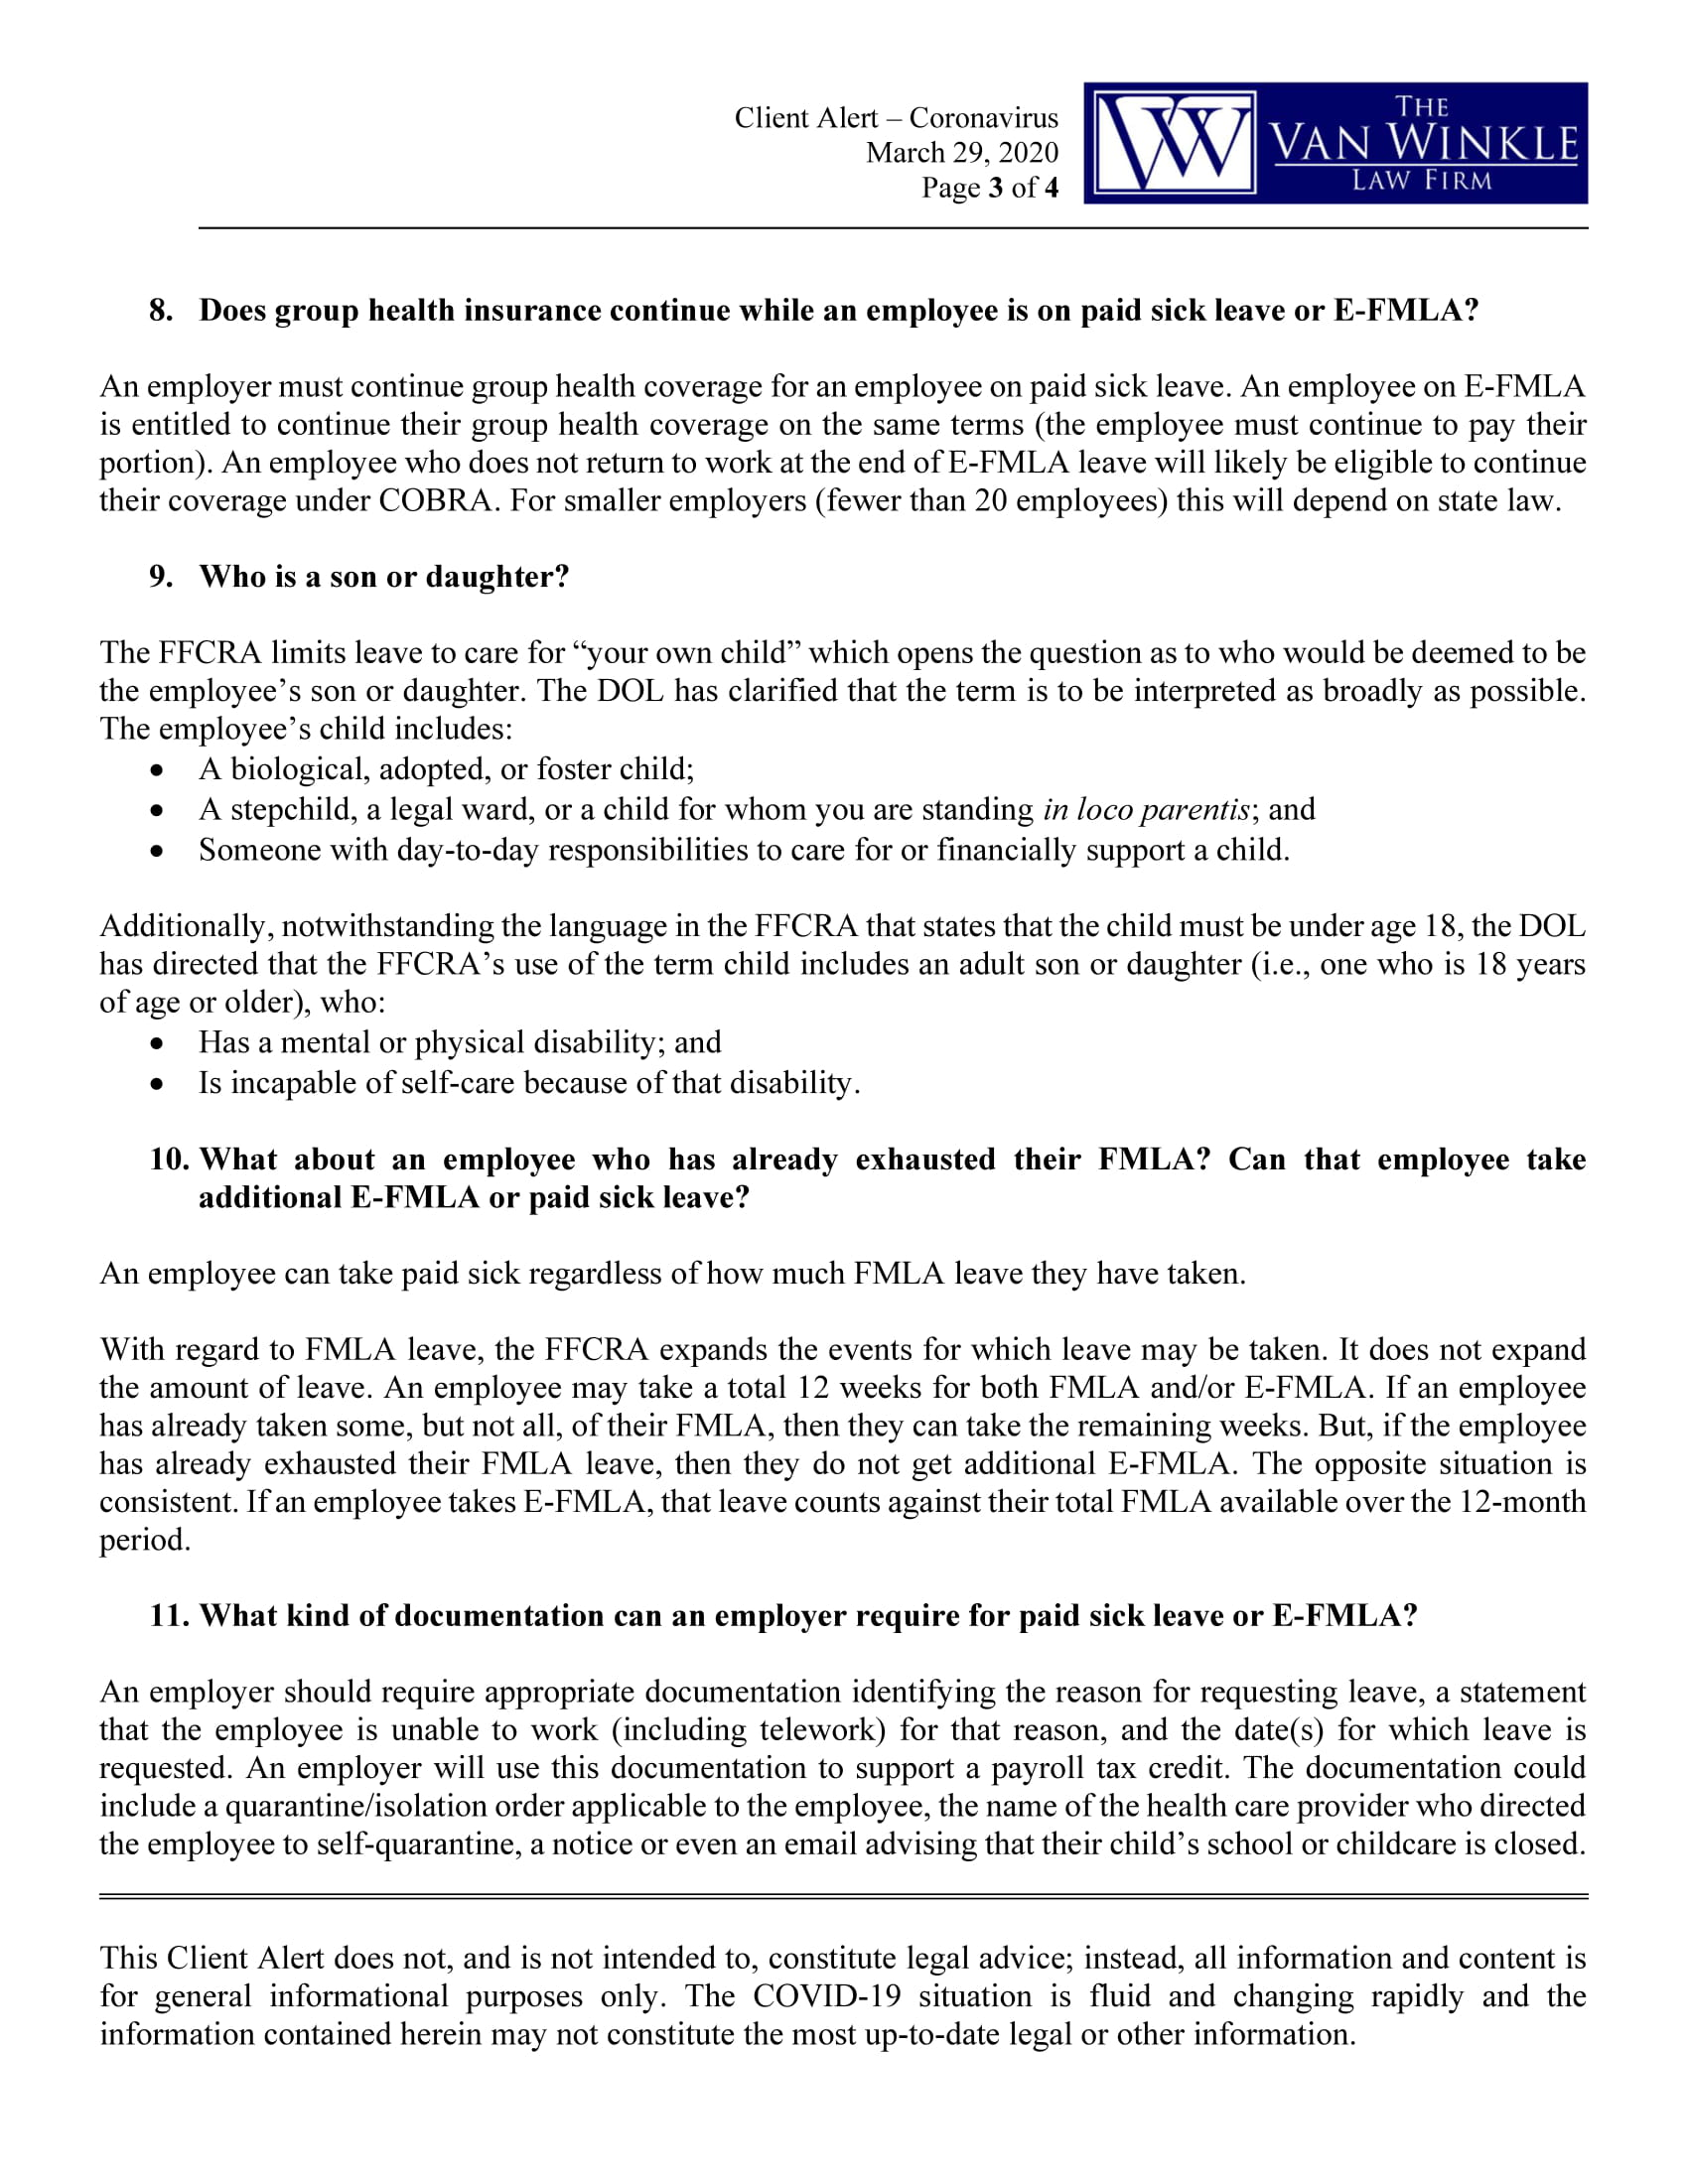 Additional DOL Clarifications Page 3